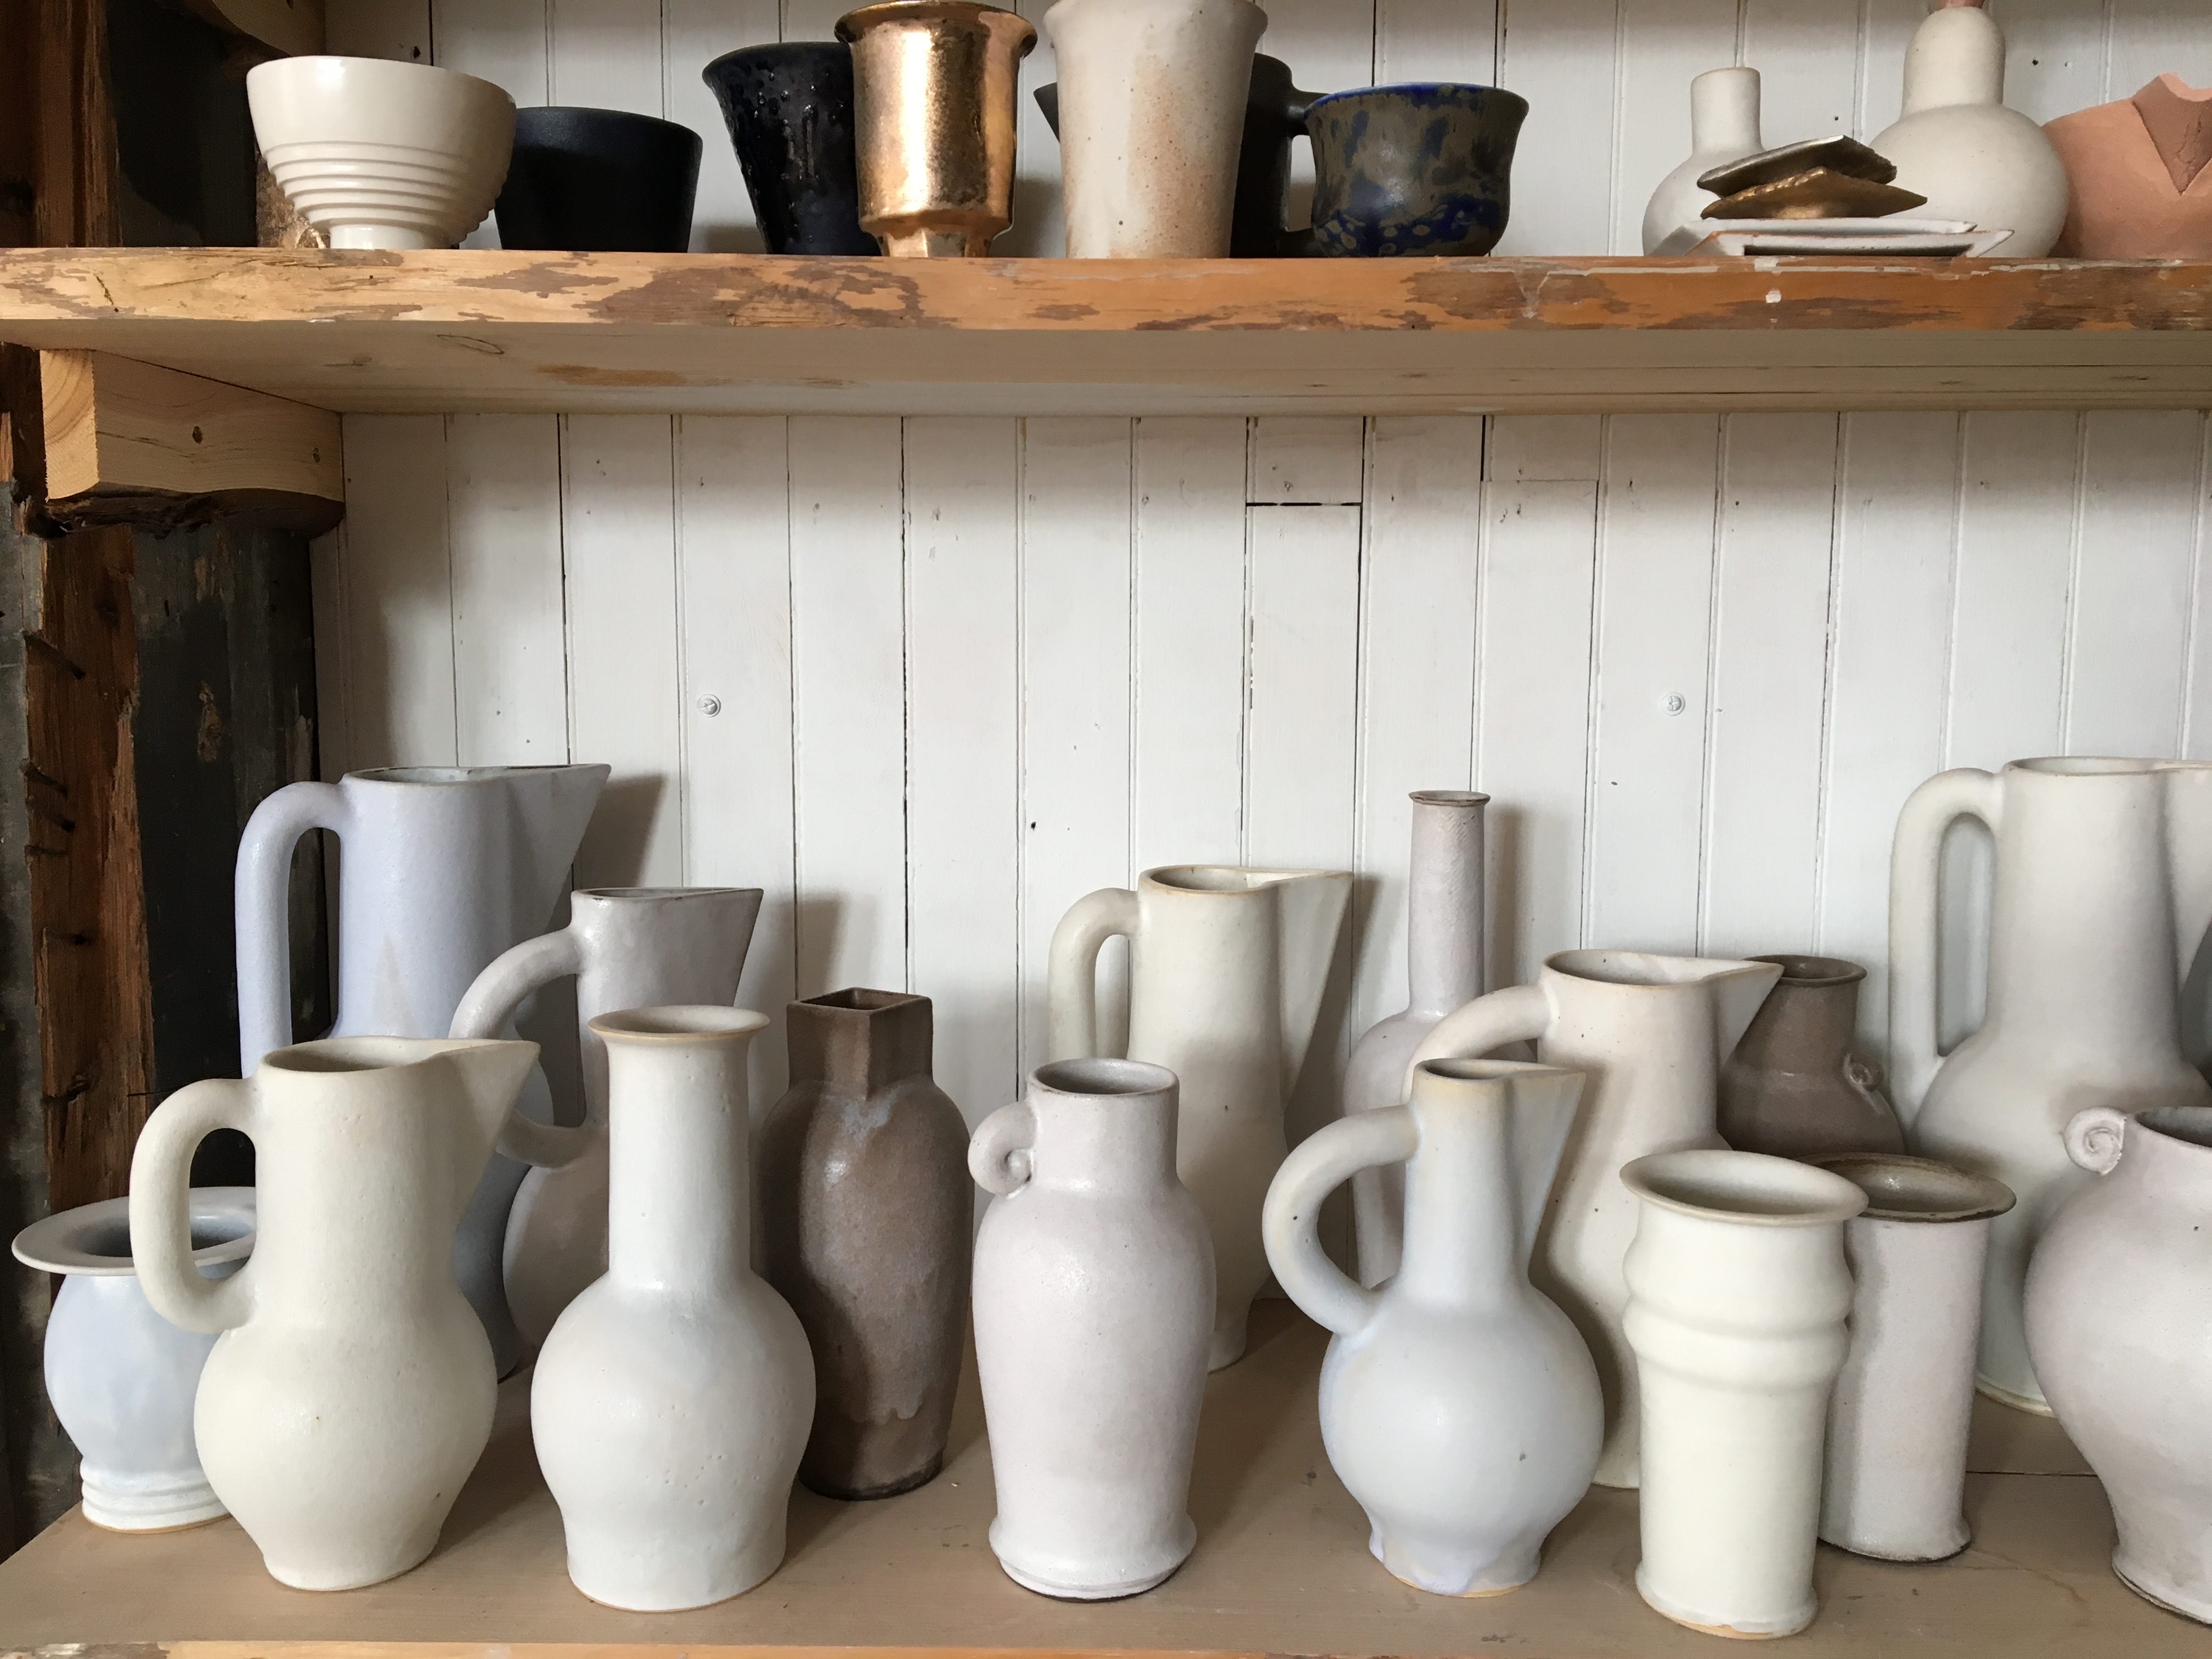 white ceramic vessels on shelf